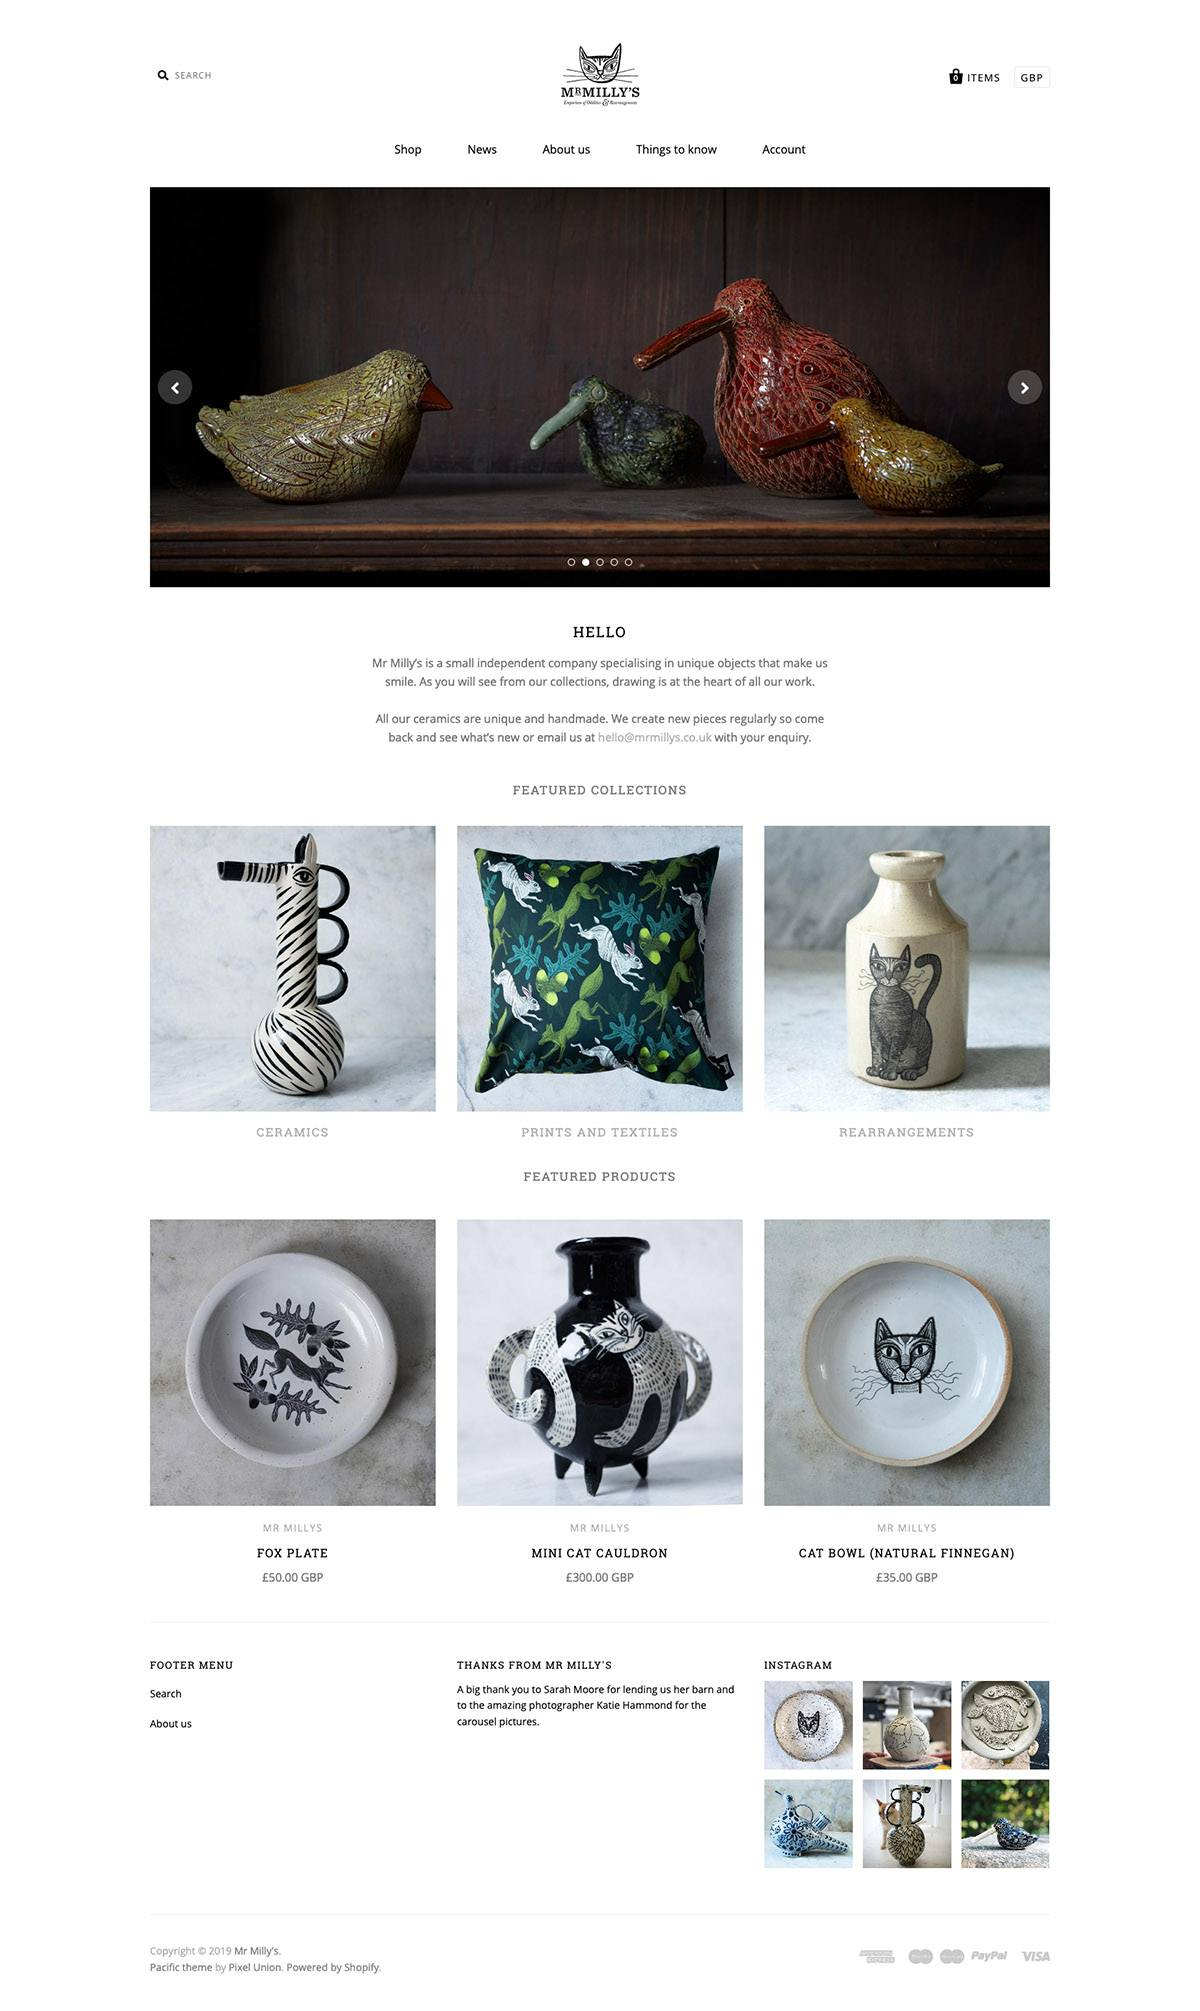 eCommerce website: Mr Milly's